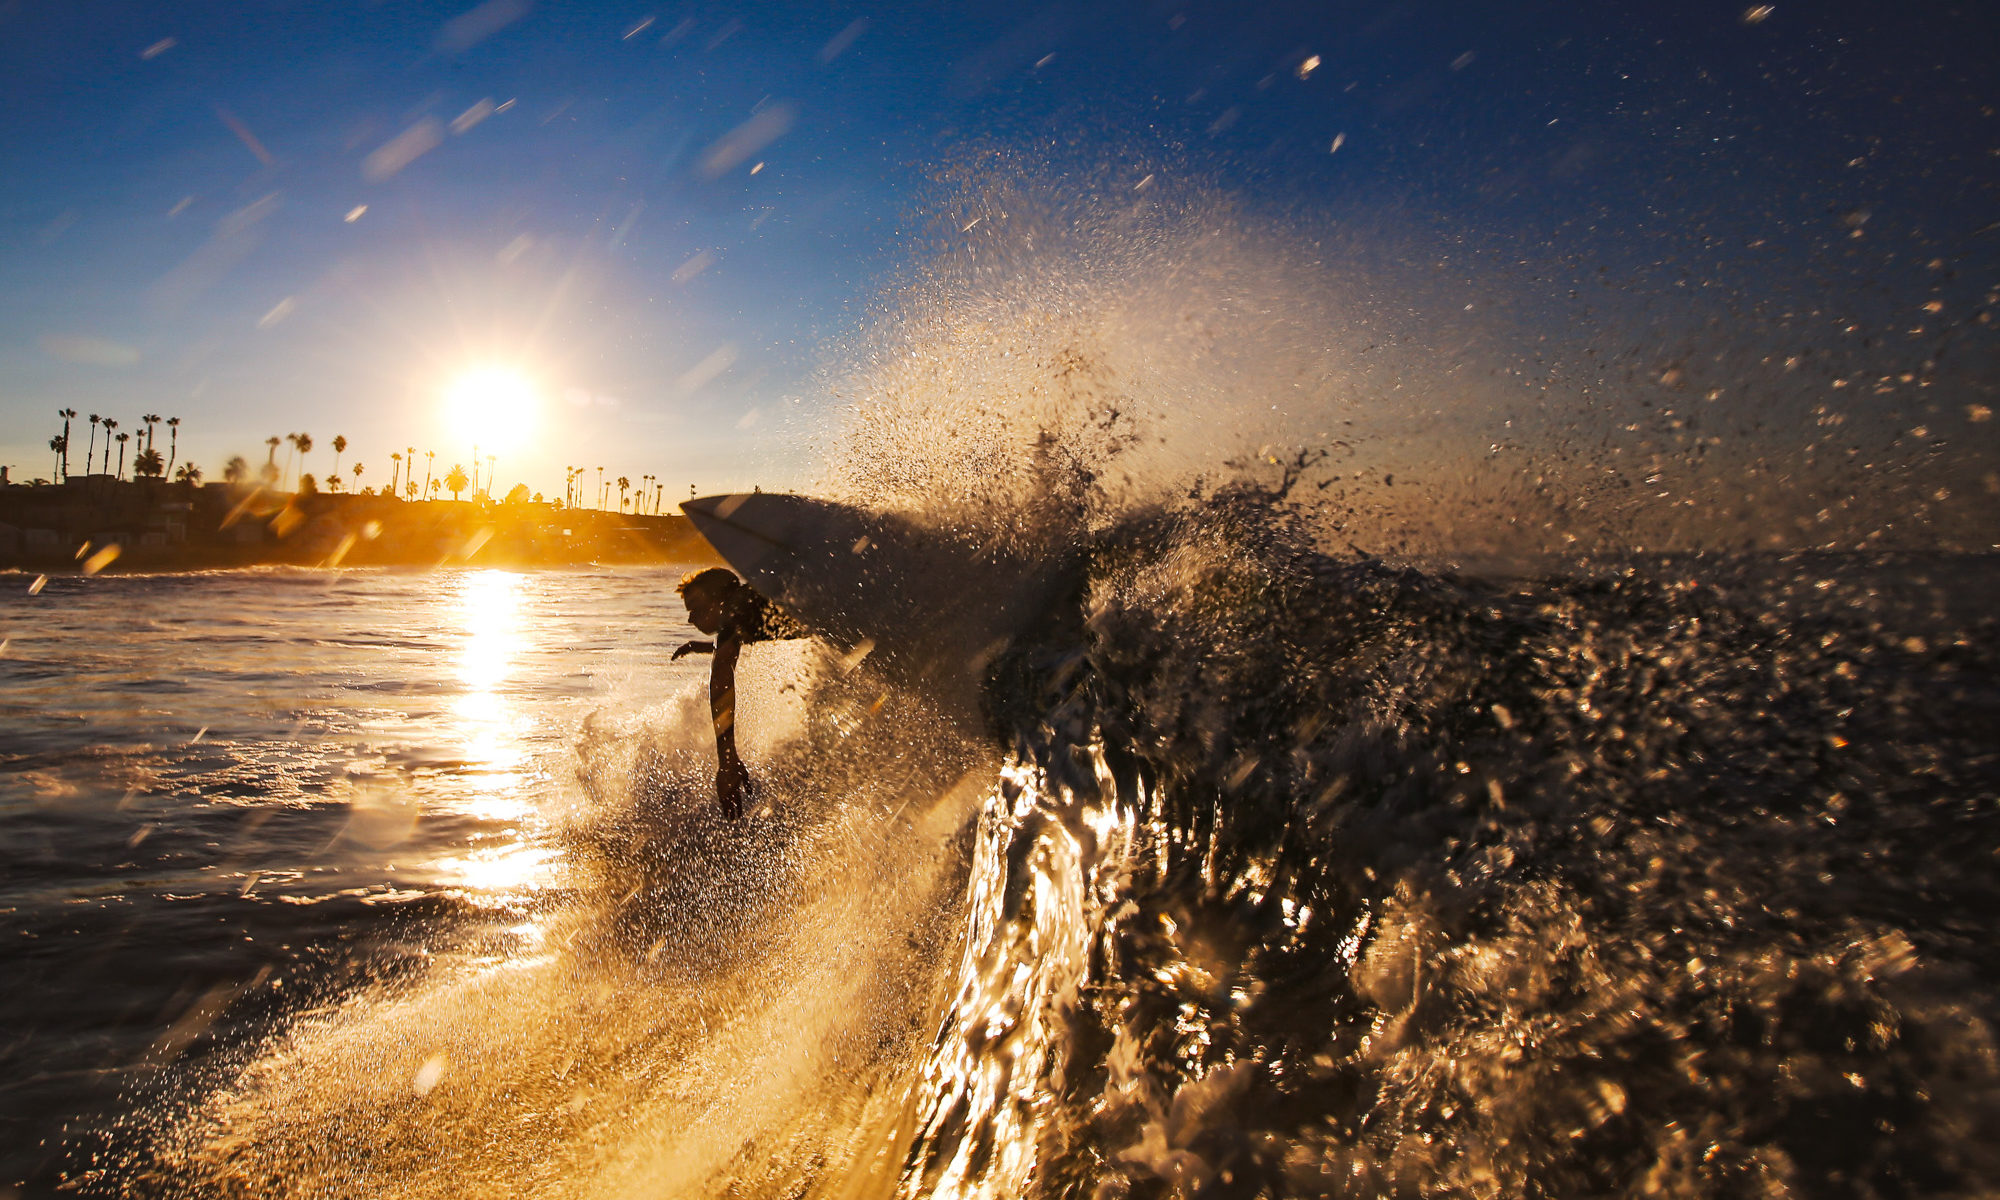 Water shot of a surfer at sunrise during a personal surf photographer session in Oceanside, California. Photo by Mark Johnson/Ironstring